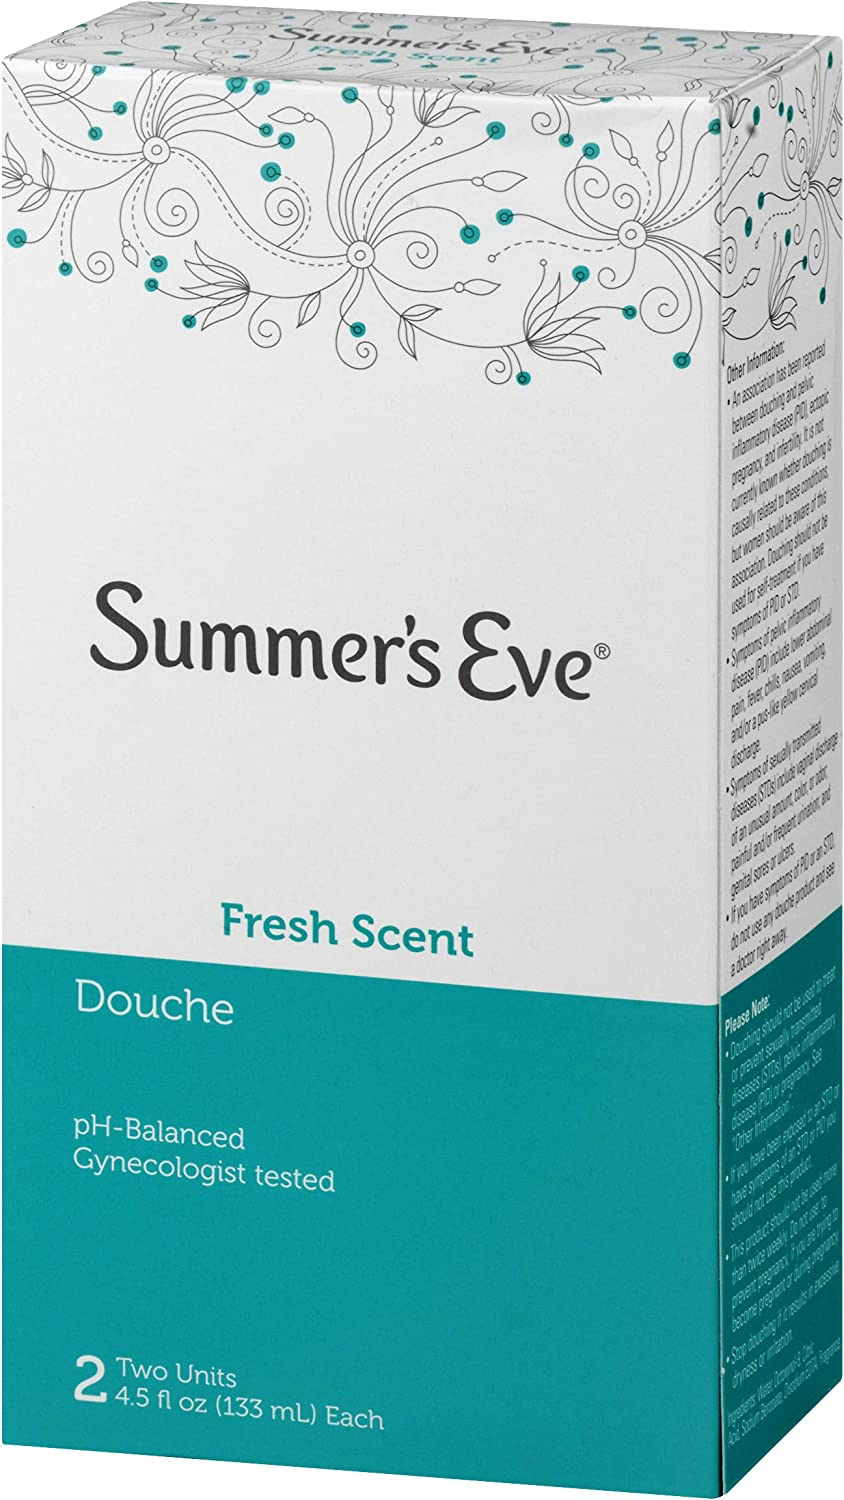 Summer's Eve Douche, Fresh Scent, pH Balanced, Dermatologist & Gynecologist Tested, 2 Count per pack, 9 Fl Oz: Health & Personal Care